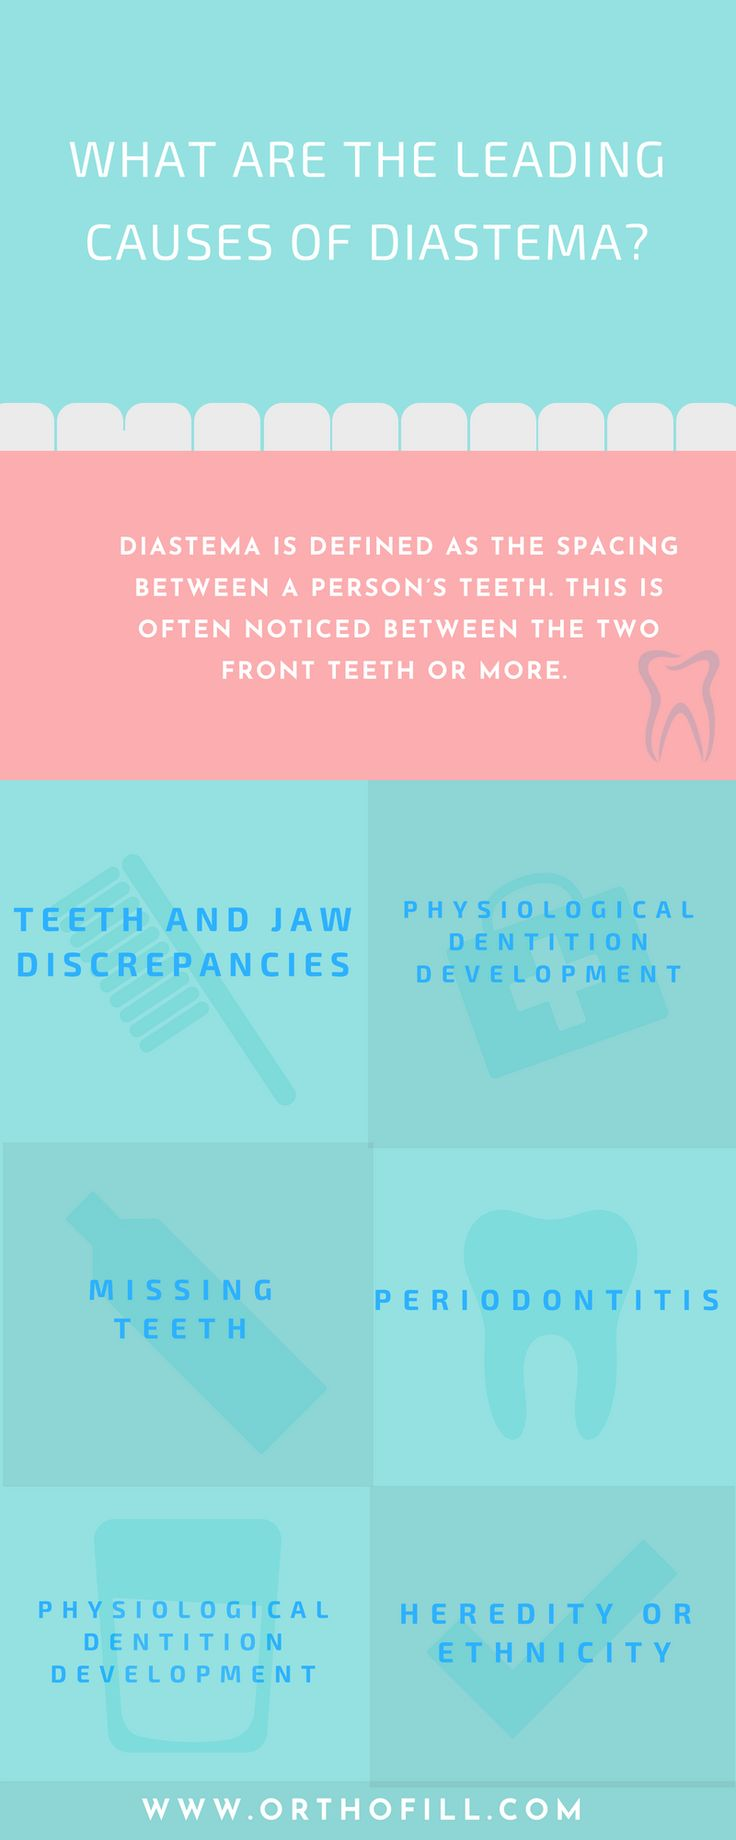 Diastema is defined as the spacing between a person's